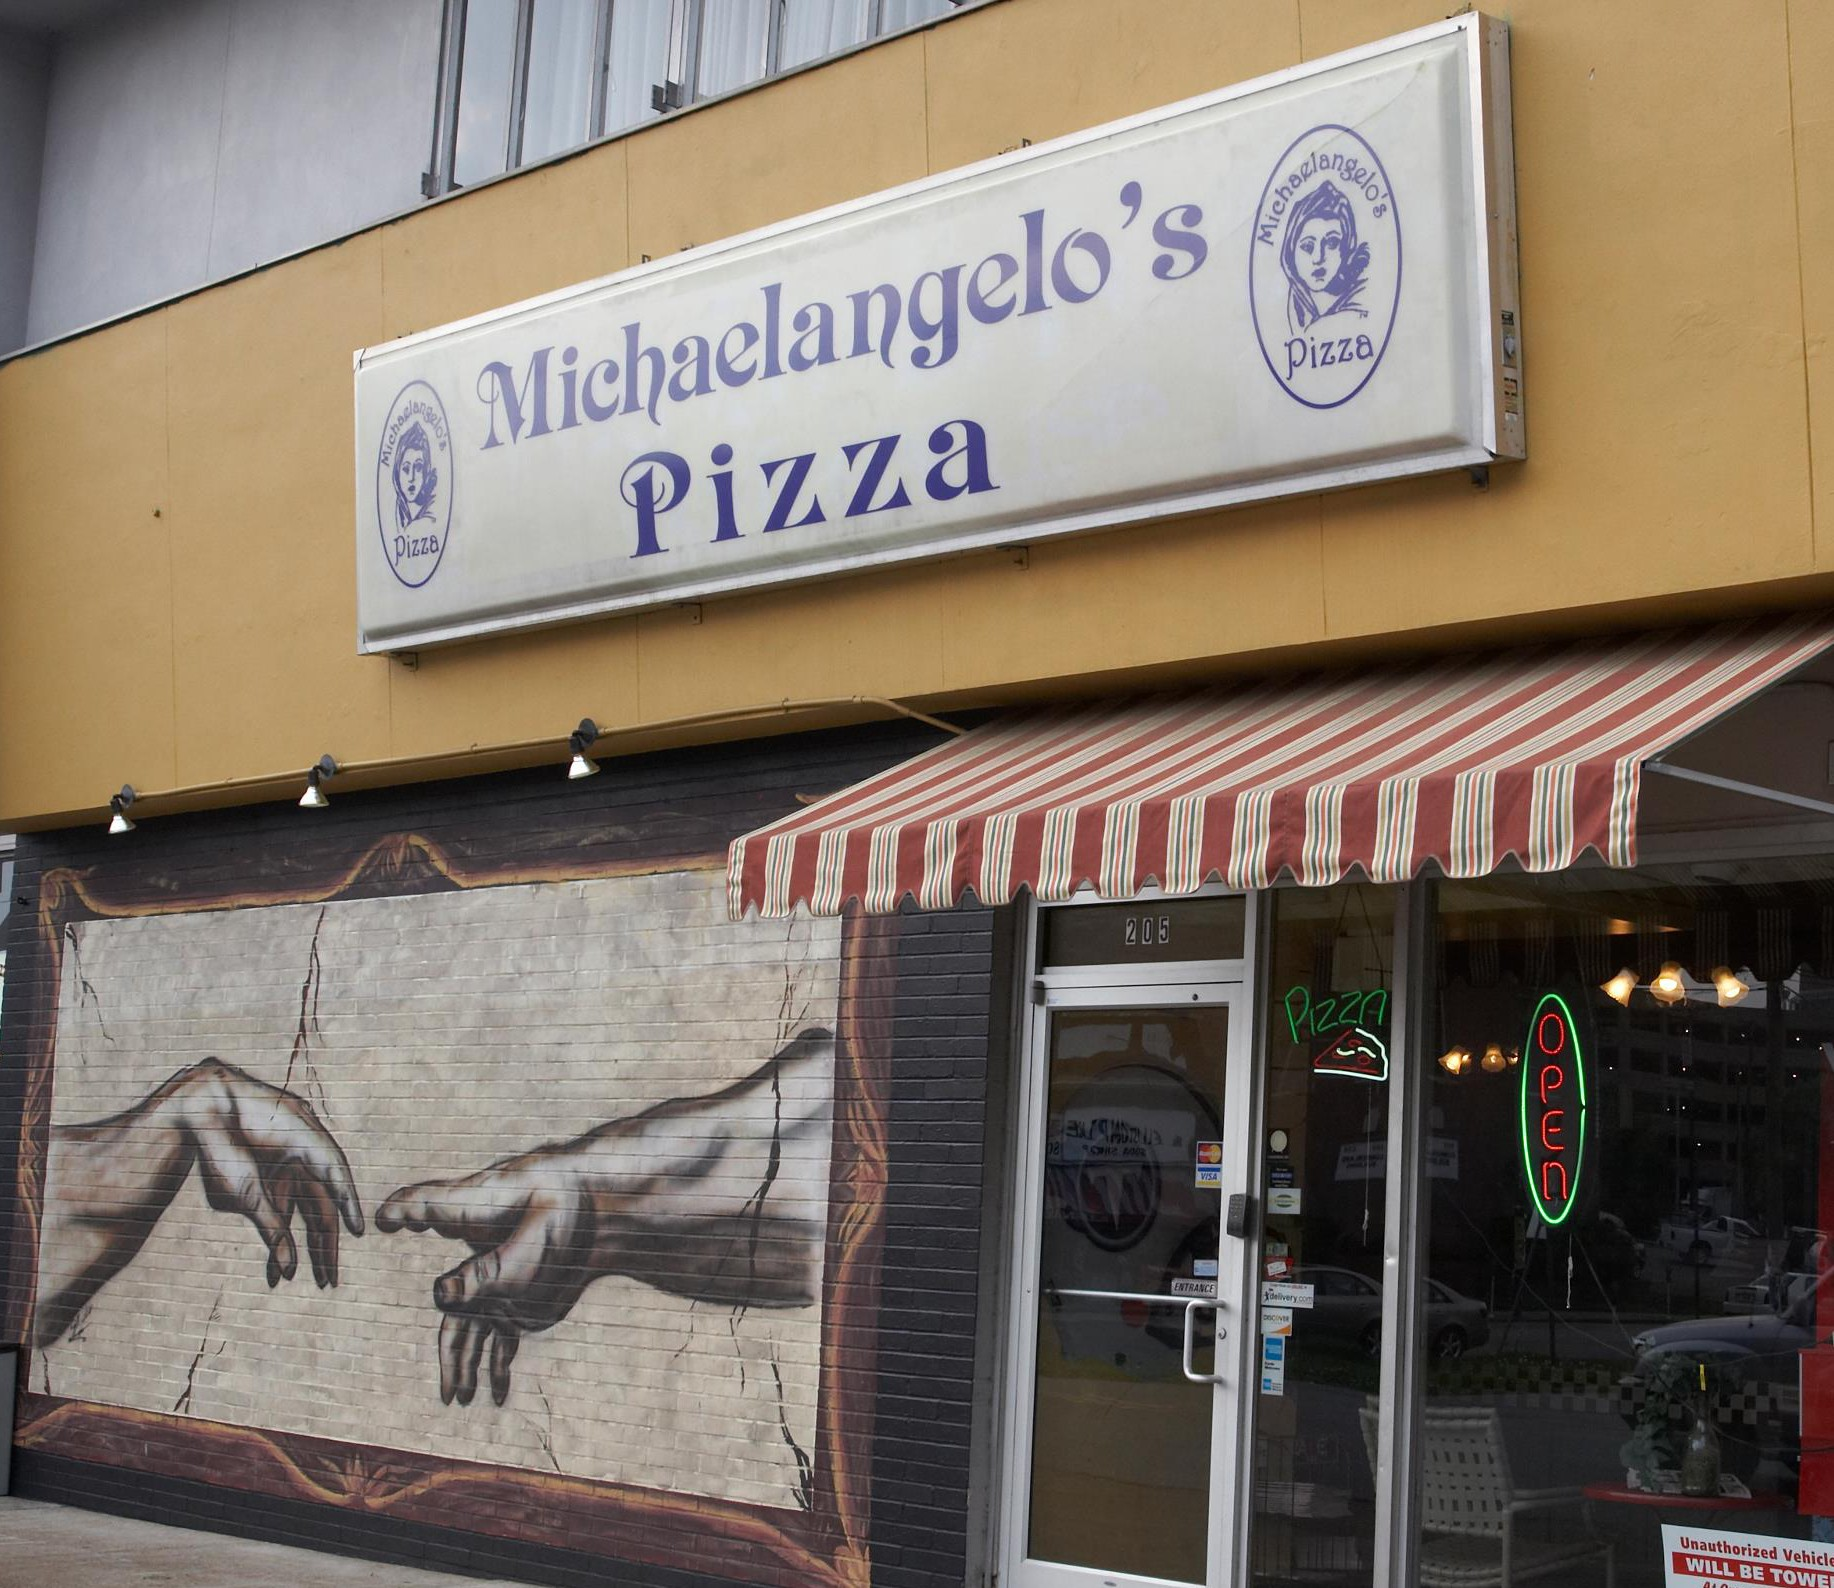 Michaelangelo's Pizza photo